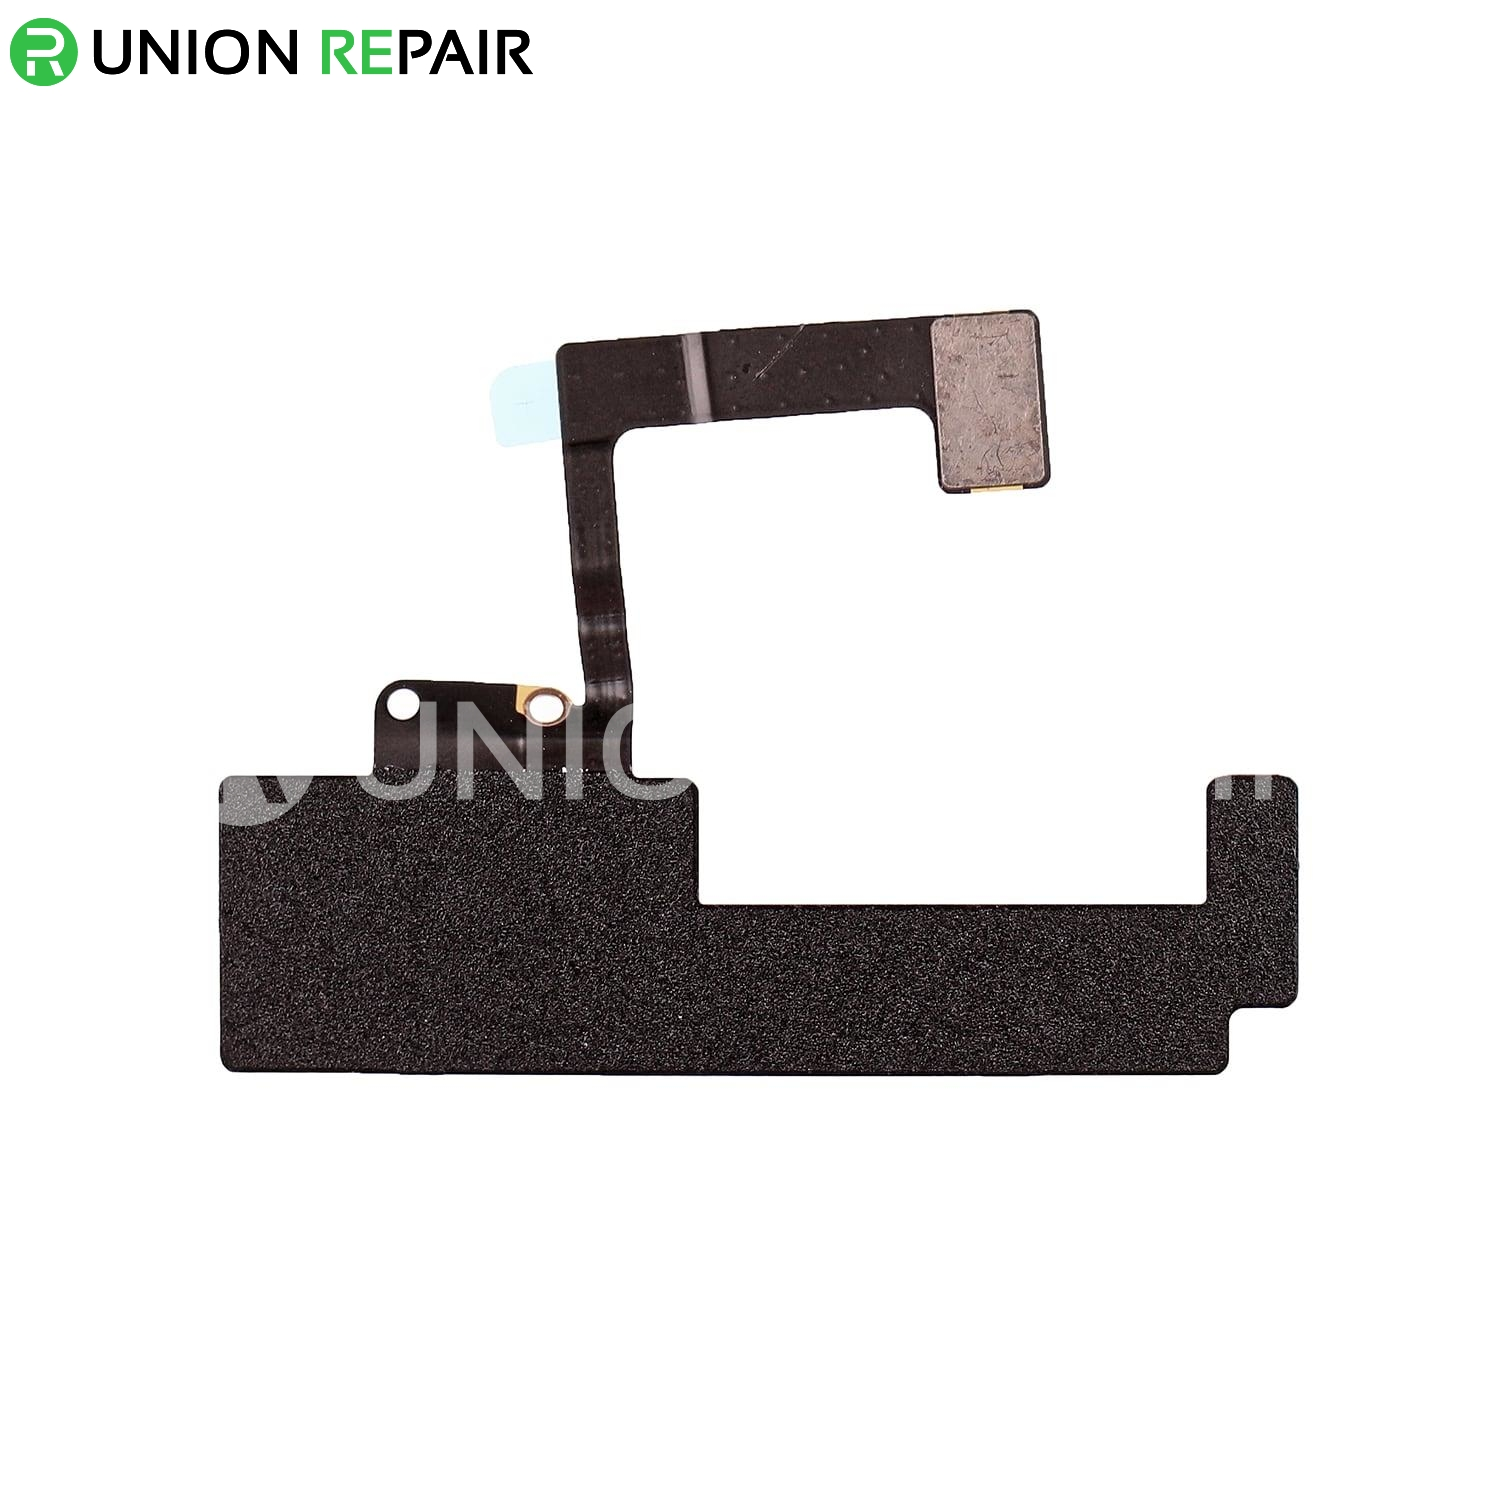 "Replacement for iPad Pro 10.5"" WiFi+3G Version Left Antenna Flex Cable"